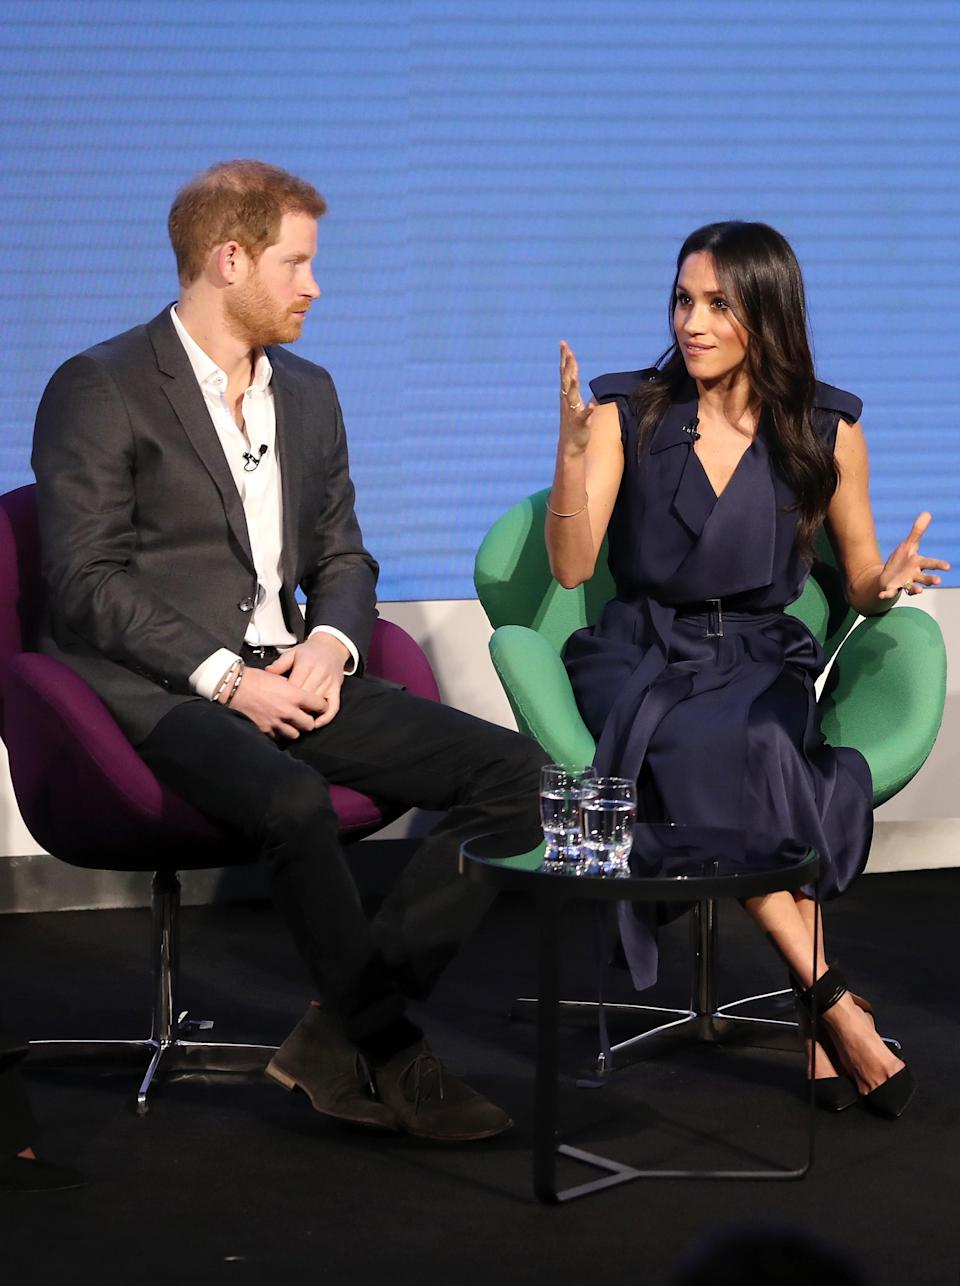 "<p>Despite it being freezing in London, Meghan chose a sleeveless, ruffle, crossover dress from designer Jason Wu to make her first official joint working debut alongside fiance Prince Harry and the Duke and Duchess of Cambridge. For those keen to follow in her simple yet trench-coat/dress style the frock is available from <a href=""https://www.net-a-porter.com/gb/en/product/992242/Jason_Wu/belted-satin-wrap-dress?cm_mmc=LinkshareUK-_-TnL5HPStwNw-_-Custom-_-LinkBuilder&siteID=TnL5HPStwNw-gW1BQbtWsH1zKzmeY4xftg&Skimlinks.com=Skimlinks.com"" rel=""nofollow noopener"" target=""_blank"" data-ylk=""slk:Net-a-Porter"" class=""link rapid-noclick-resp"">Net-a-Porter</a> for an eye watering £1415. </p>"